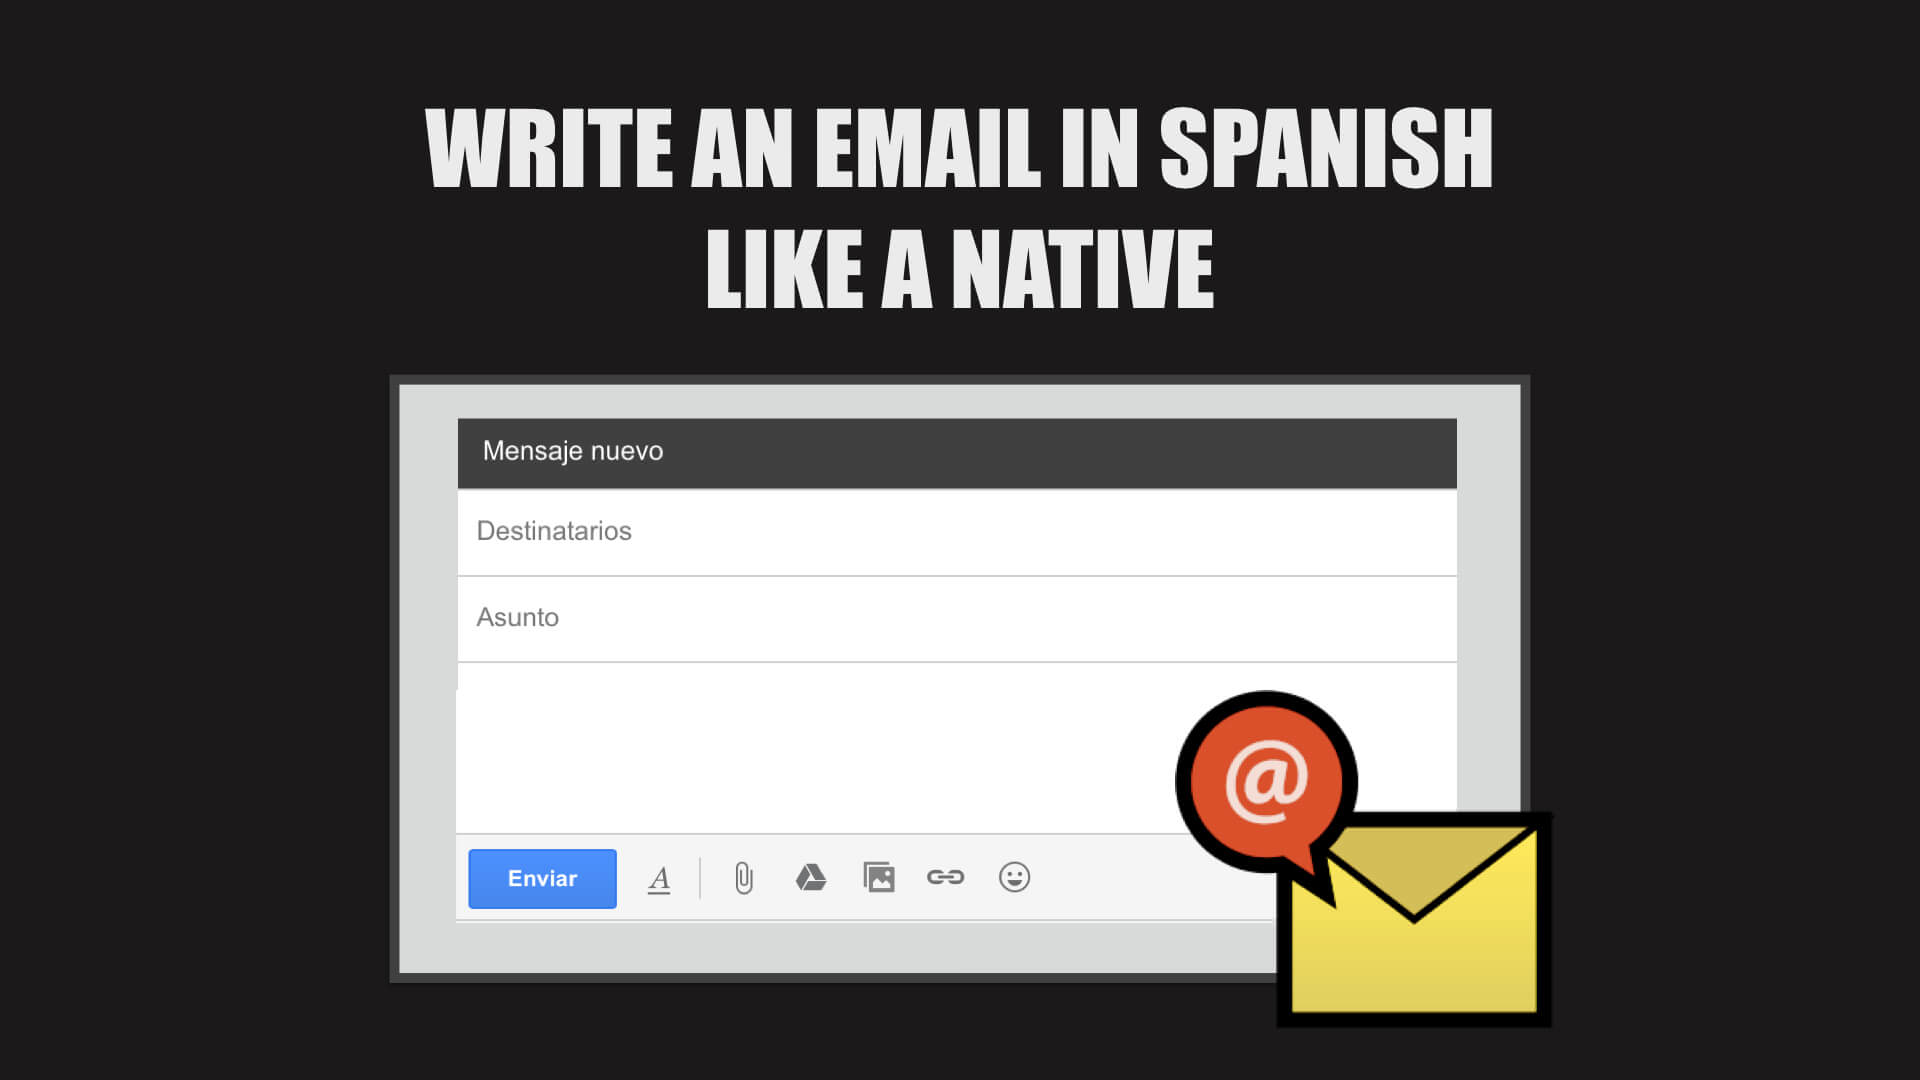 writing an email in spanish This lesson teaches us how to write an email or letter in spanish we will also cover some words and phrases that will be very useful when writing an email in spanish.